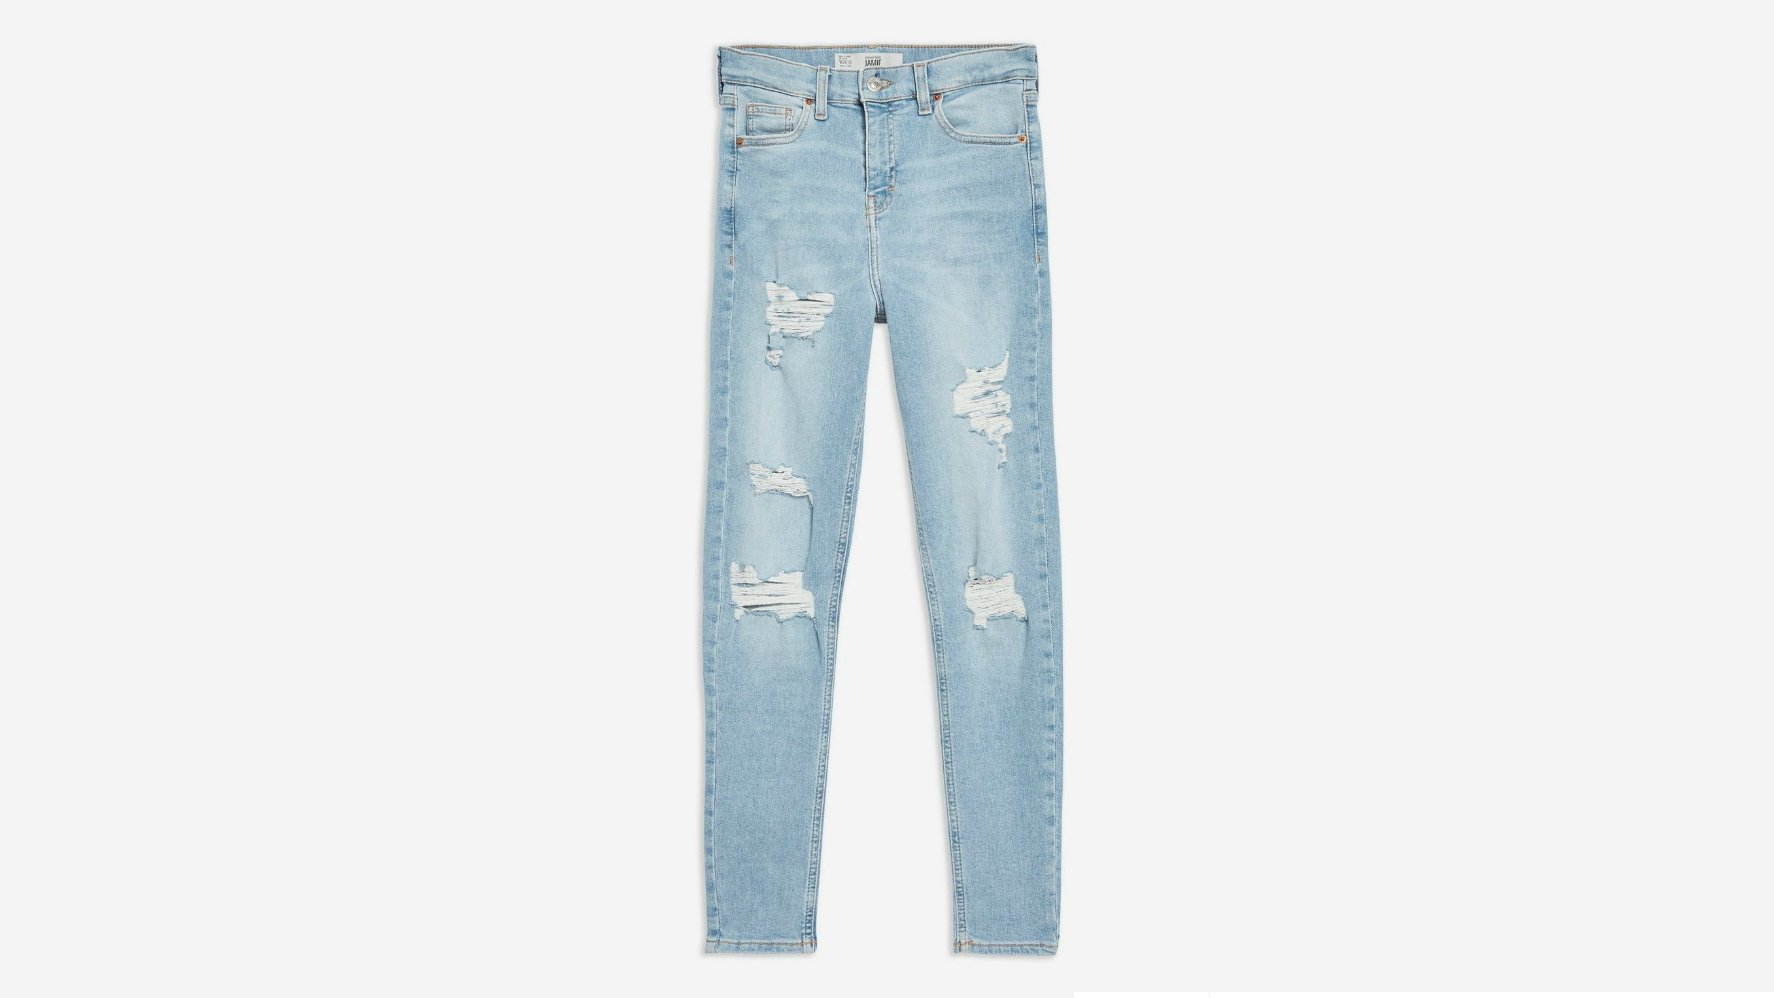 e4cb6383 Best jeans for men and women 2019: The latest jeans from Levi ...